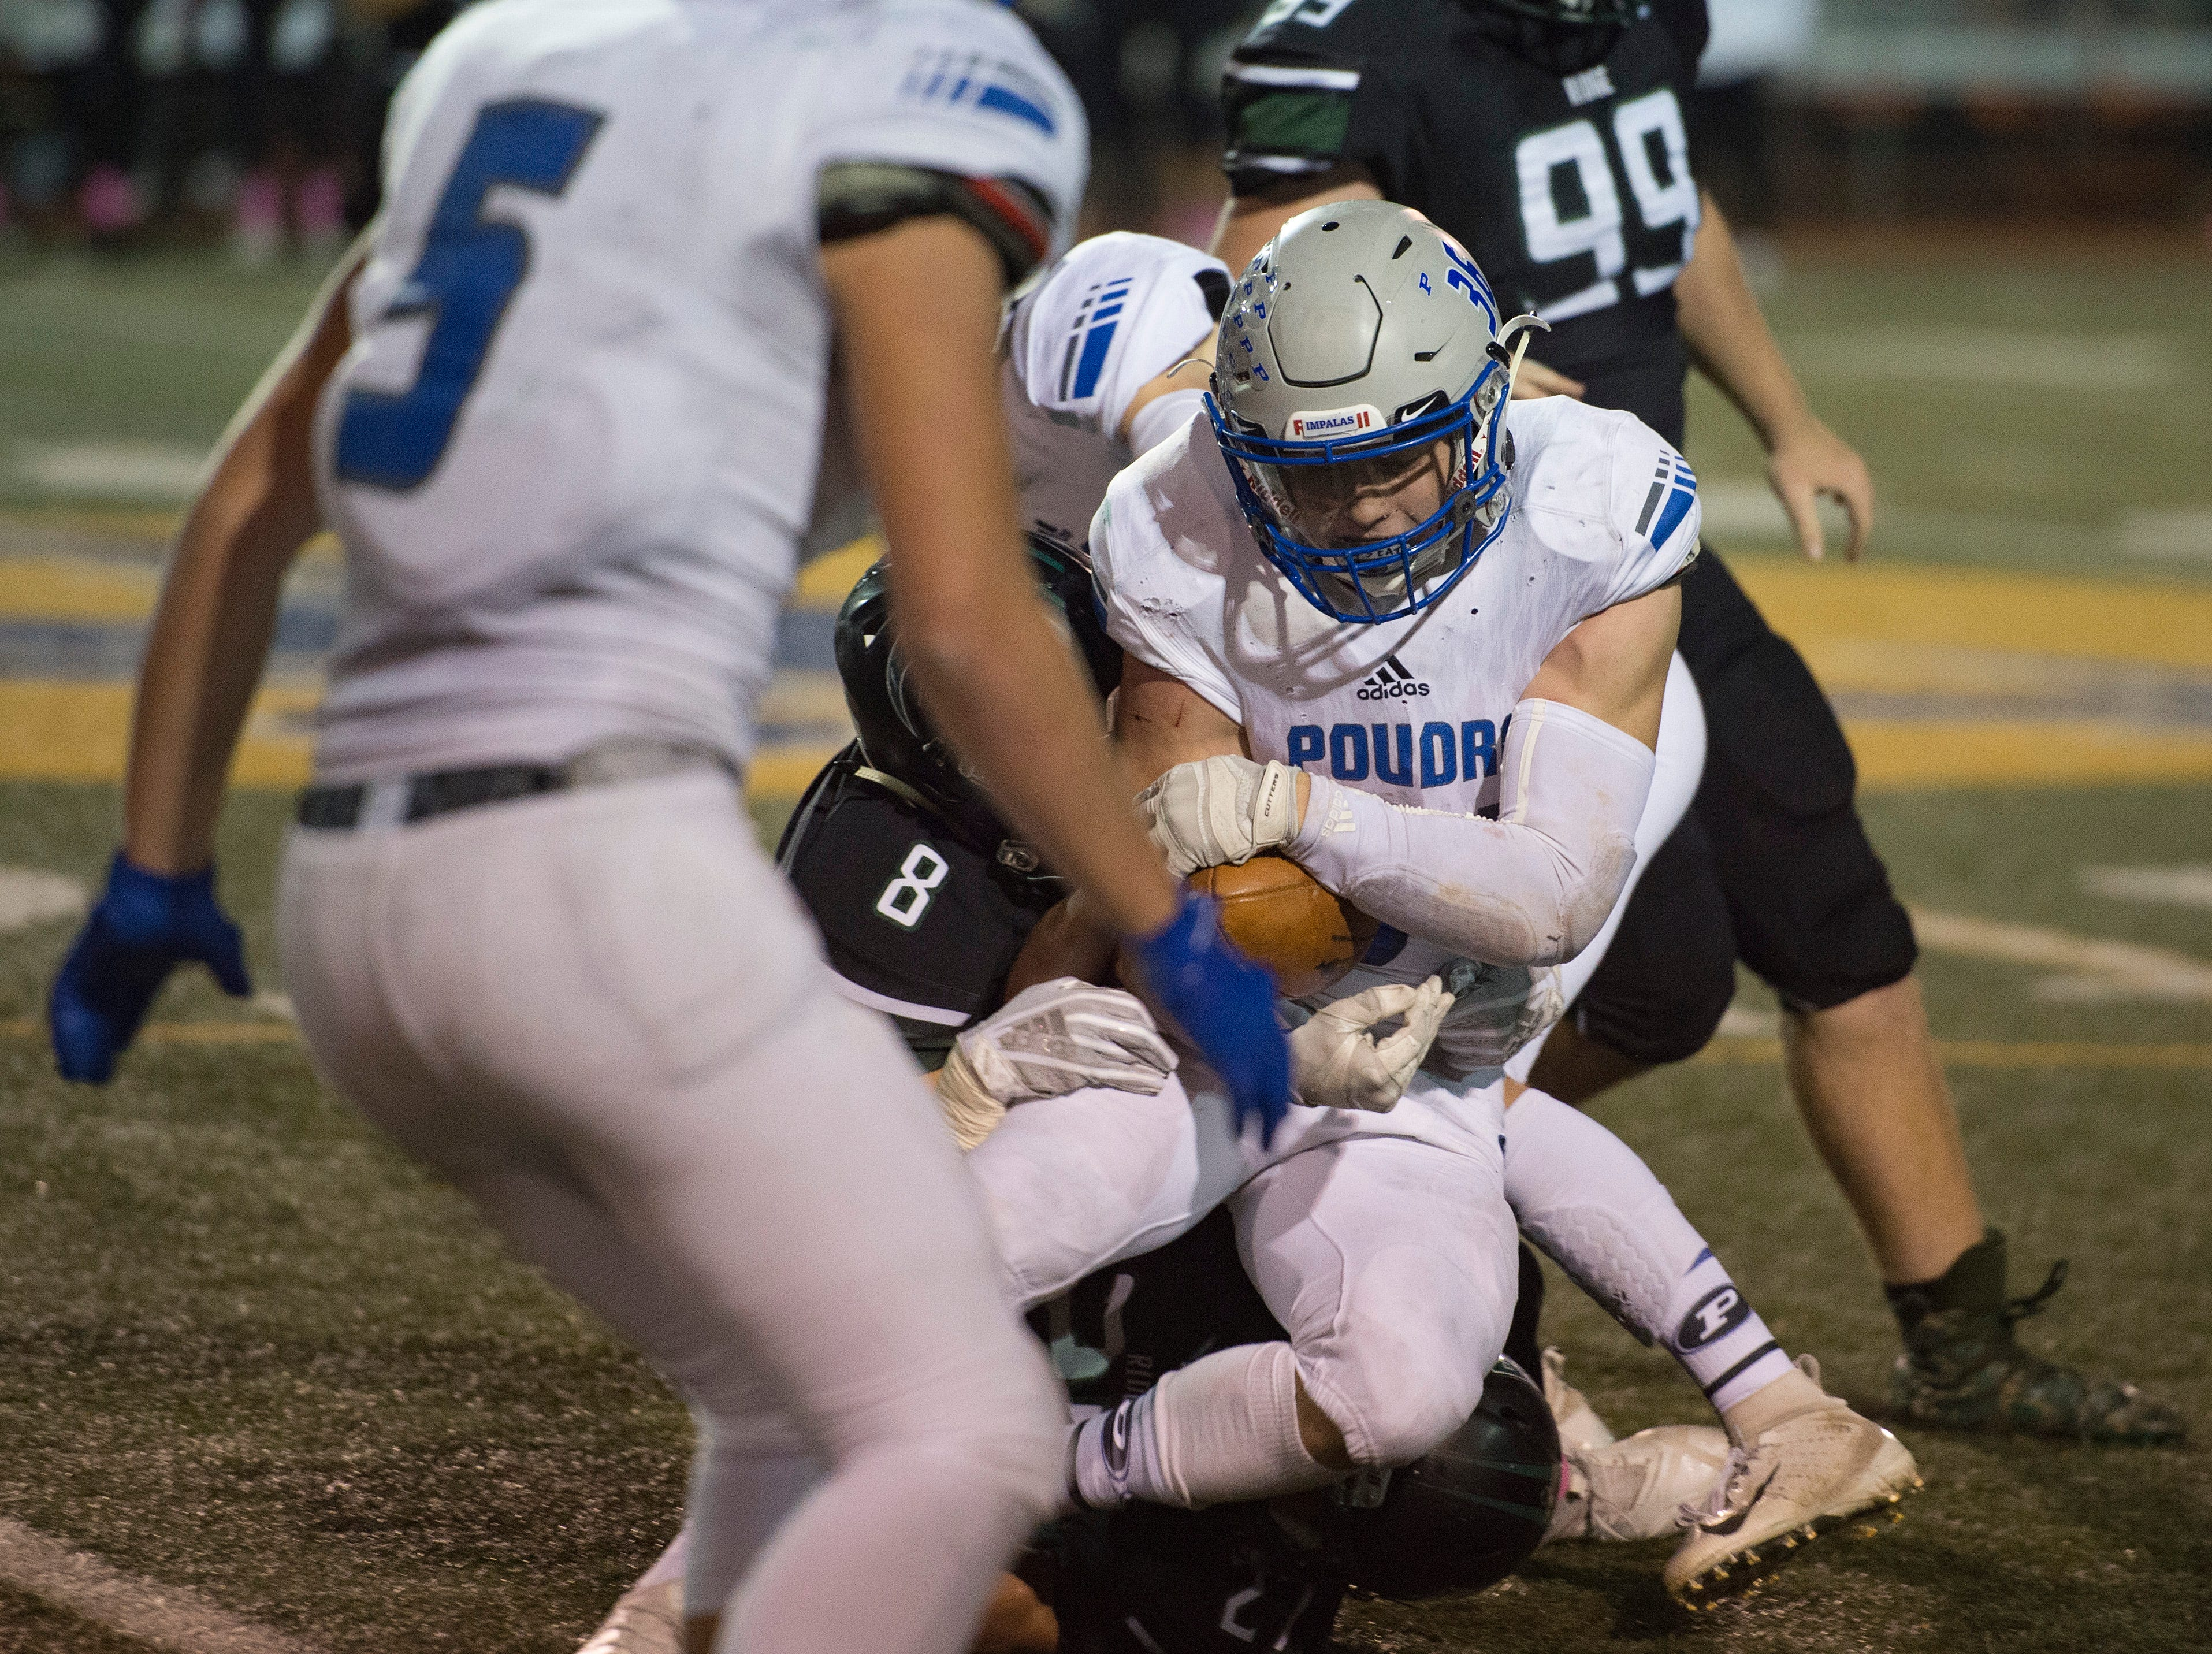 Poudre High School running back Tate Satterfield is brought down by  Fossil Ridge's Ryan Ressler in a game at French Field on Friday, October 26, 2018.